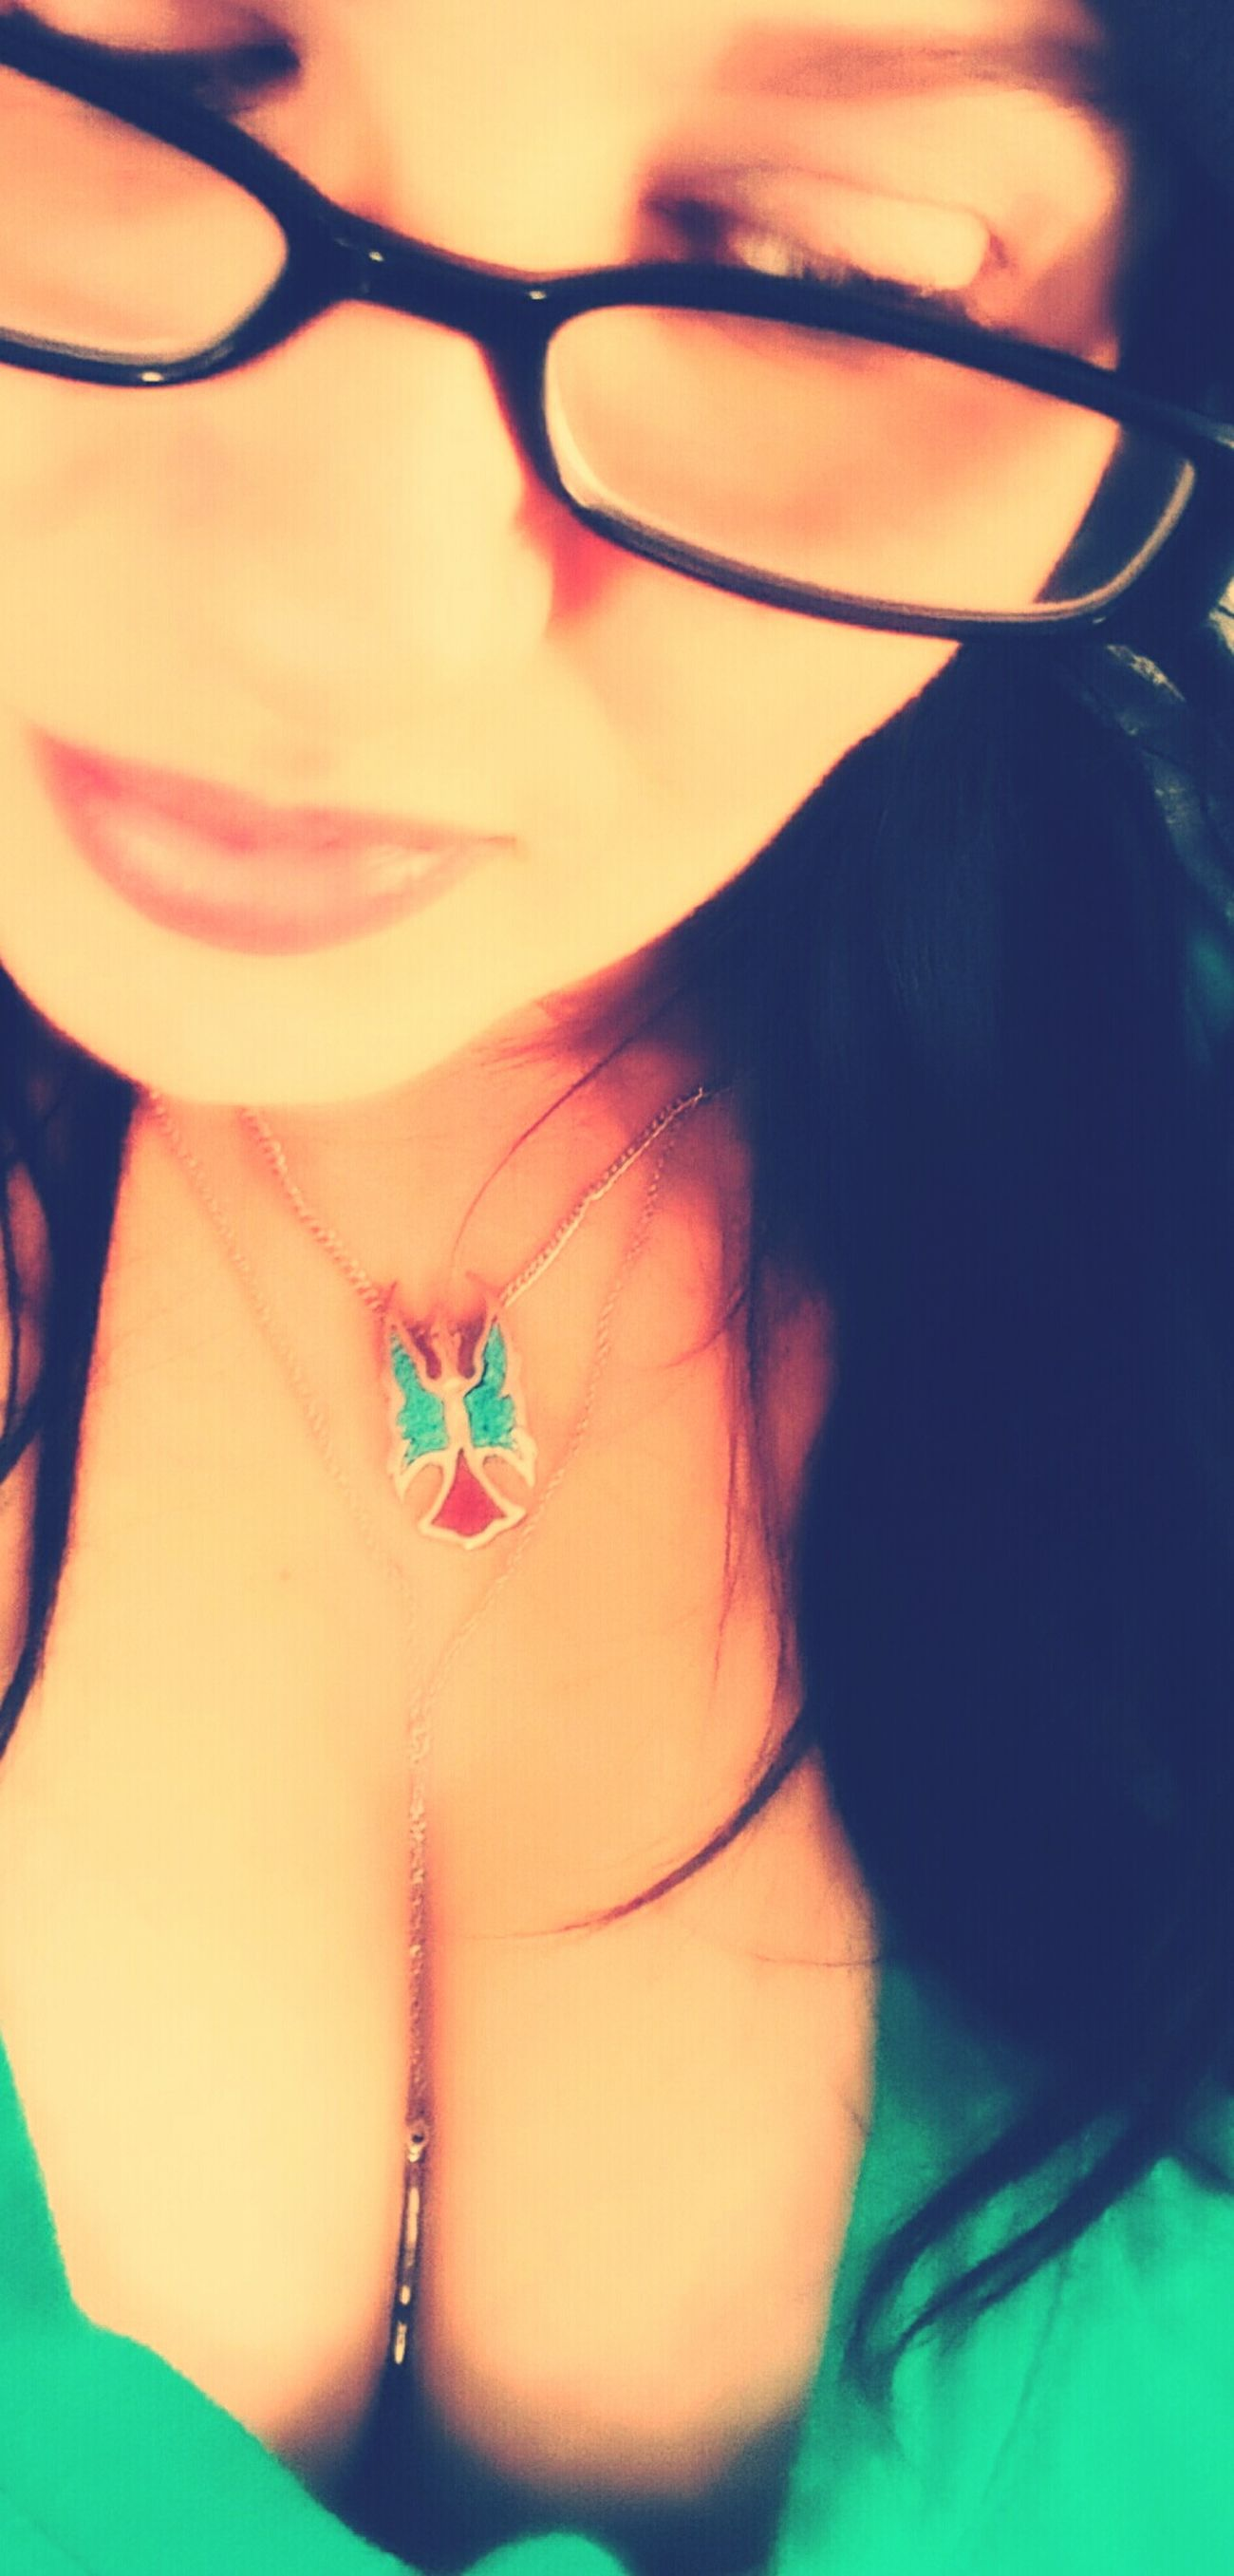 Feathers♡ Selfie✌ Lips Cleavage Cleavageappreciationday Jewelry Turquoise Women Woman Portrait Close Up Women Of EyeEm Cleavage... Cleavage On Point Womensphysique Womens Portraiture Women Portraits Womenpower Womanselfie Lips ♡ Beautifullips Fulllips